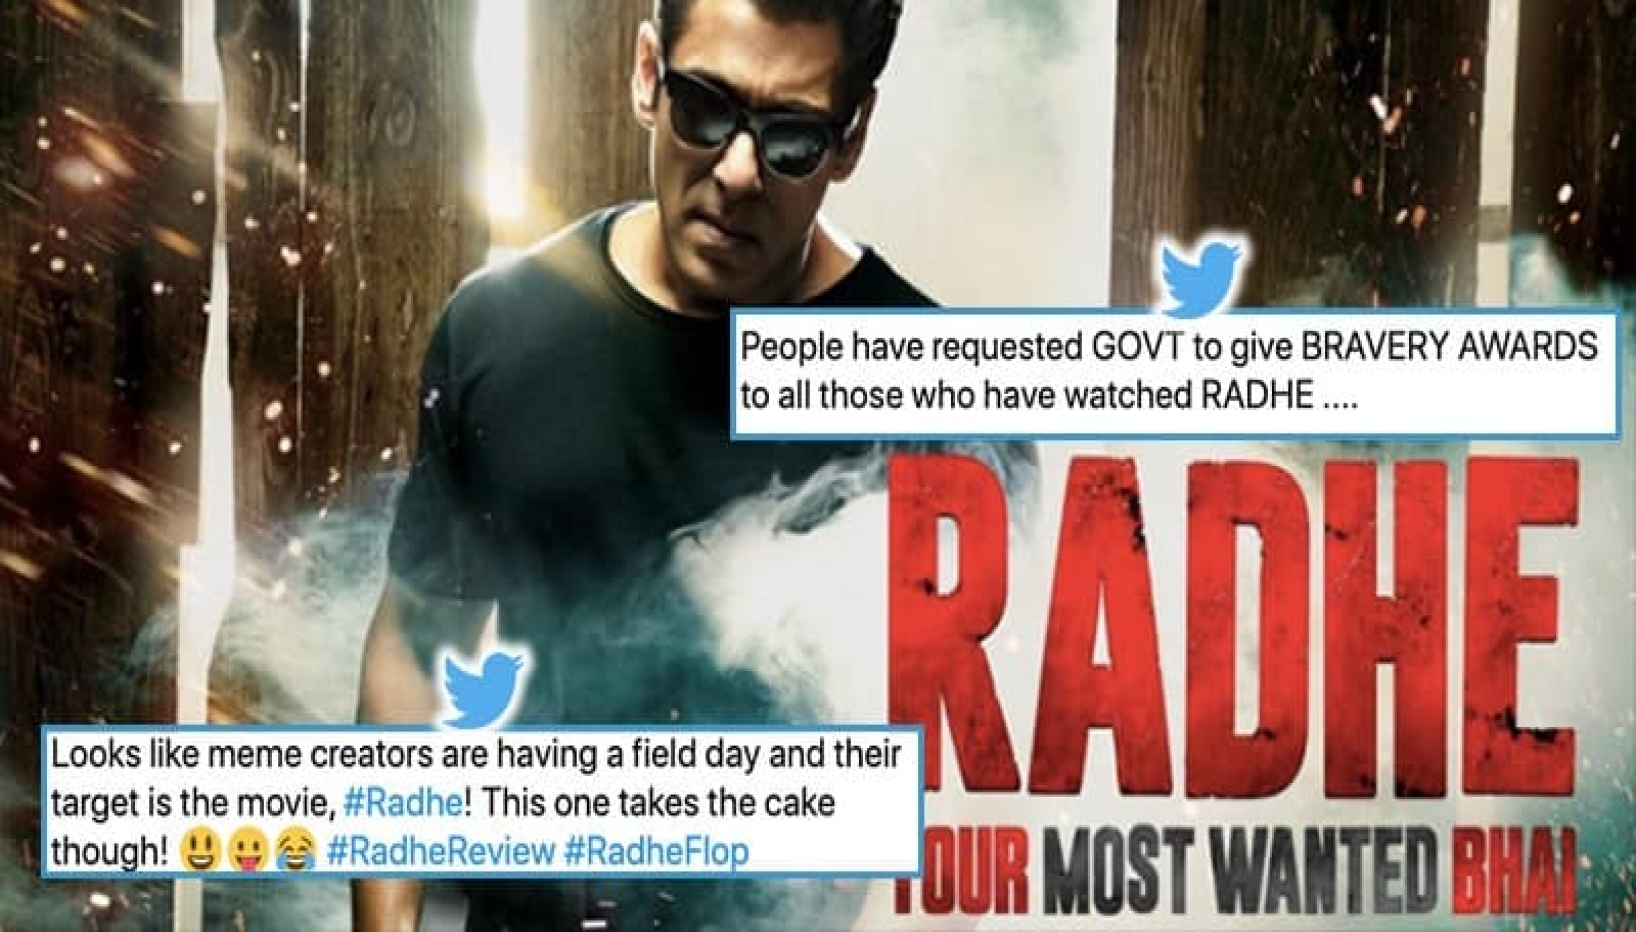 These Hilarious Memes And Tweets Explain Why Radhe Received a 1.9 Rating On IMDB